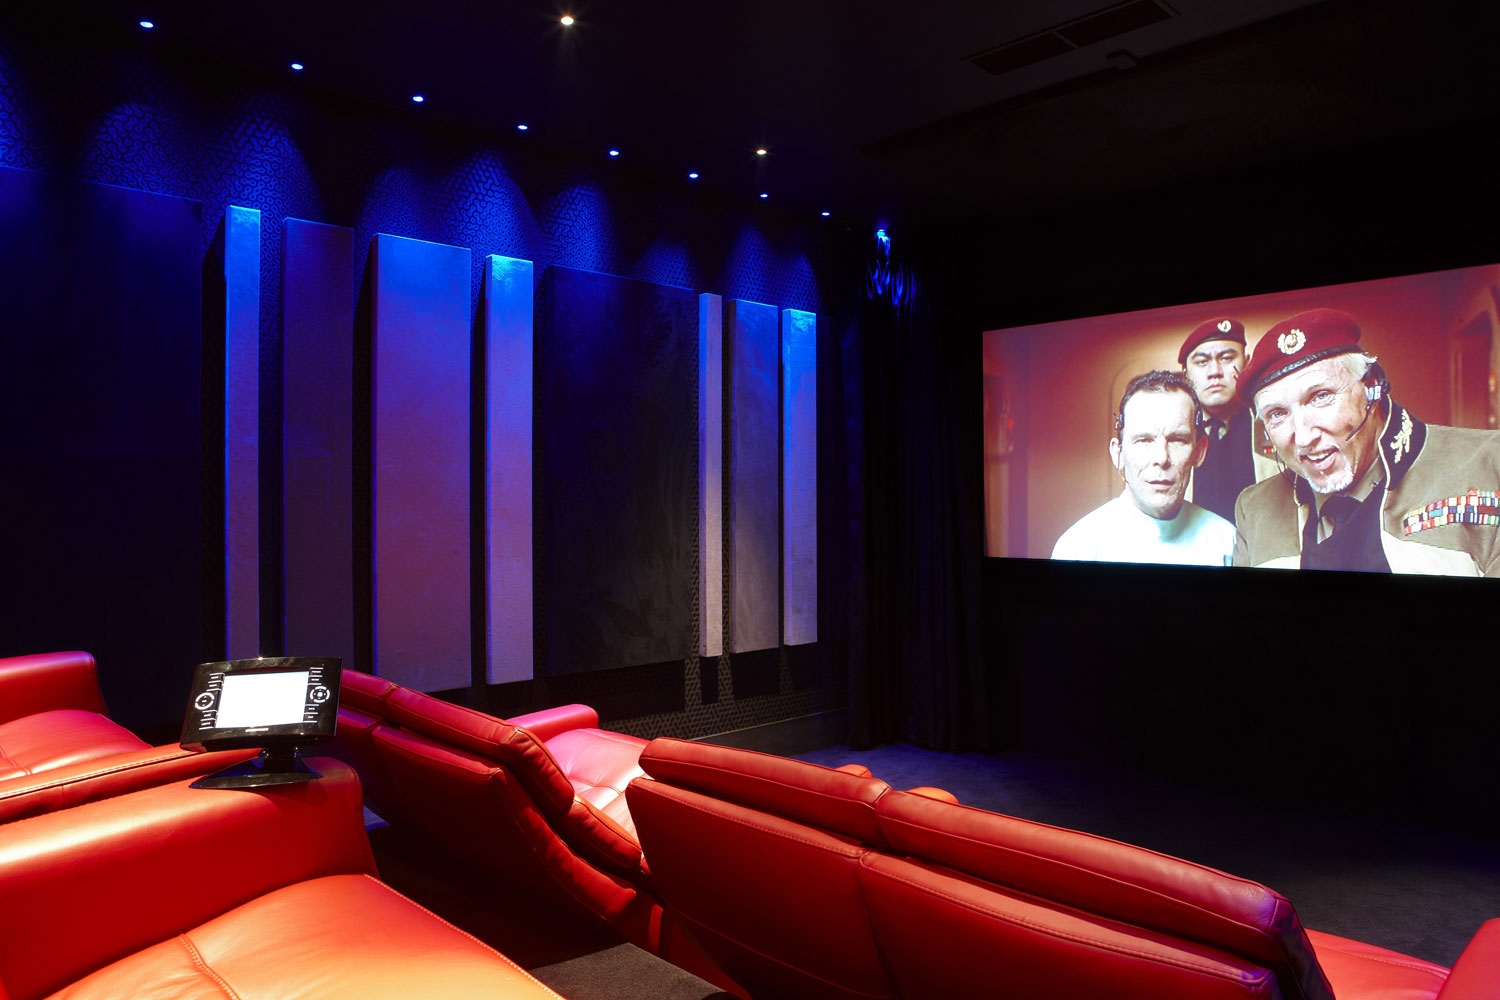 Private Residence Cinema Room, Northwood, London |London Residential Photographers